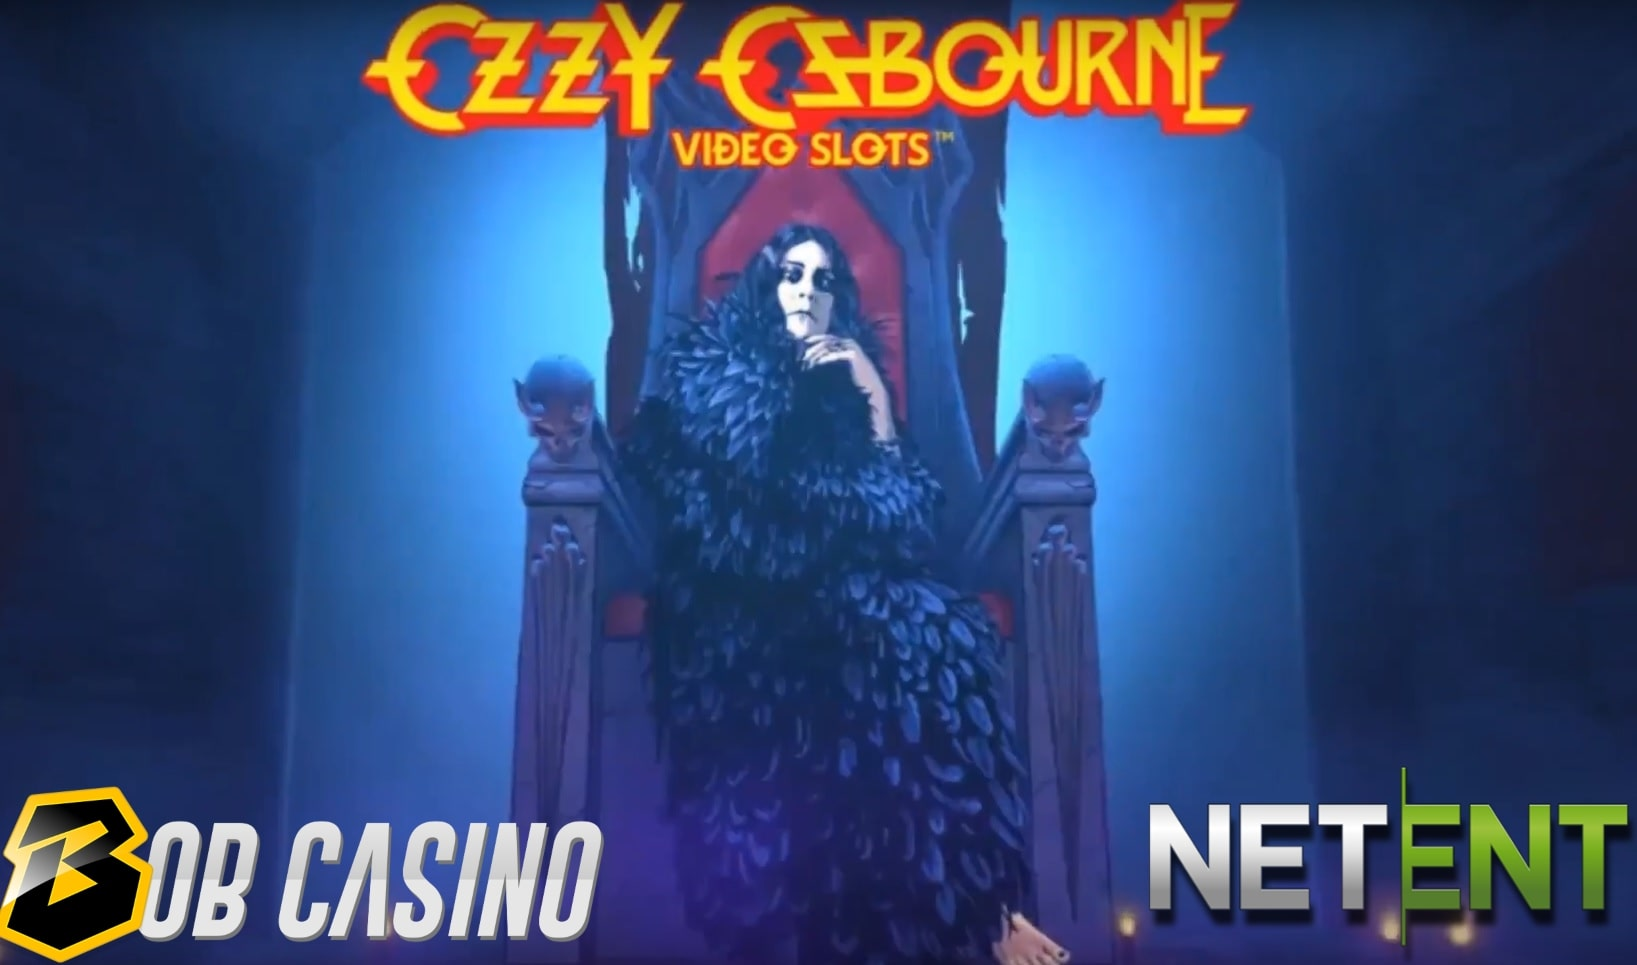 Ozzy Osbourne Video Slot Review (NetEnt)